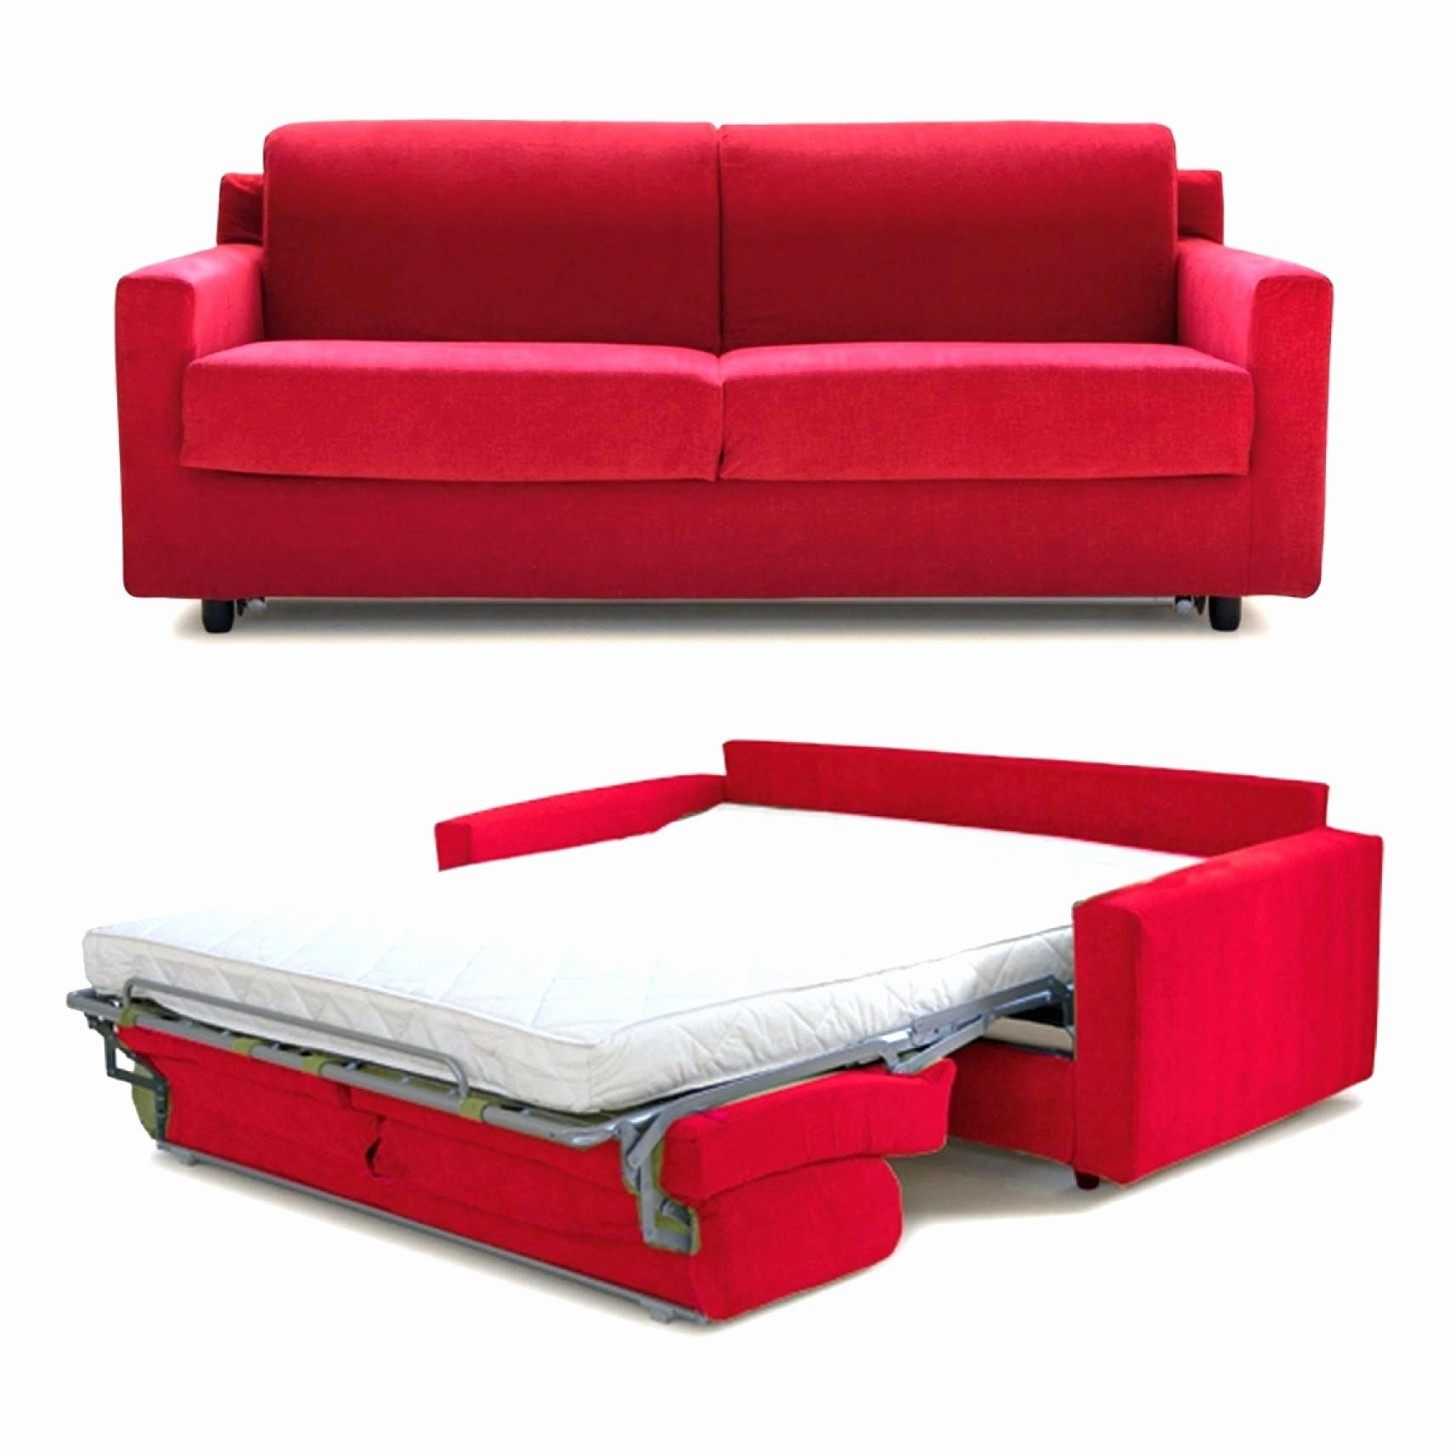 Fly Canape Lit Joli Divin Canapé Lit Fly Avec Canape Fly Lovely Banquette Lit Fly Beau